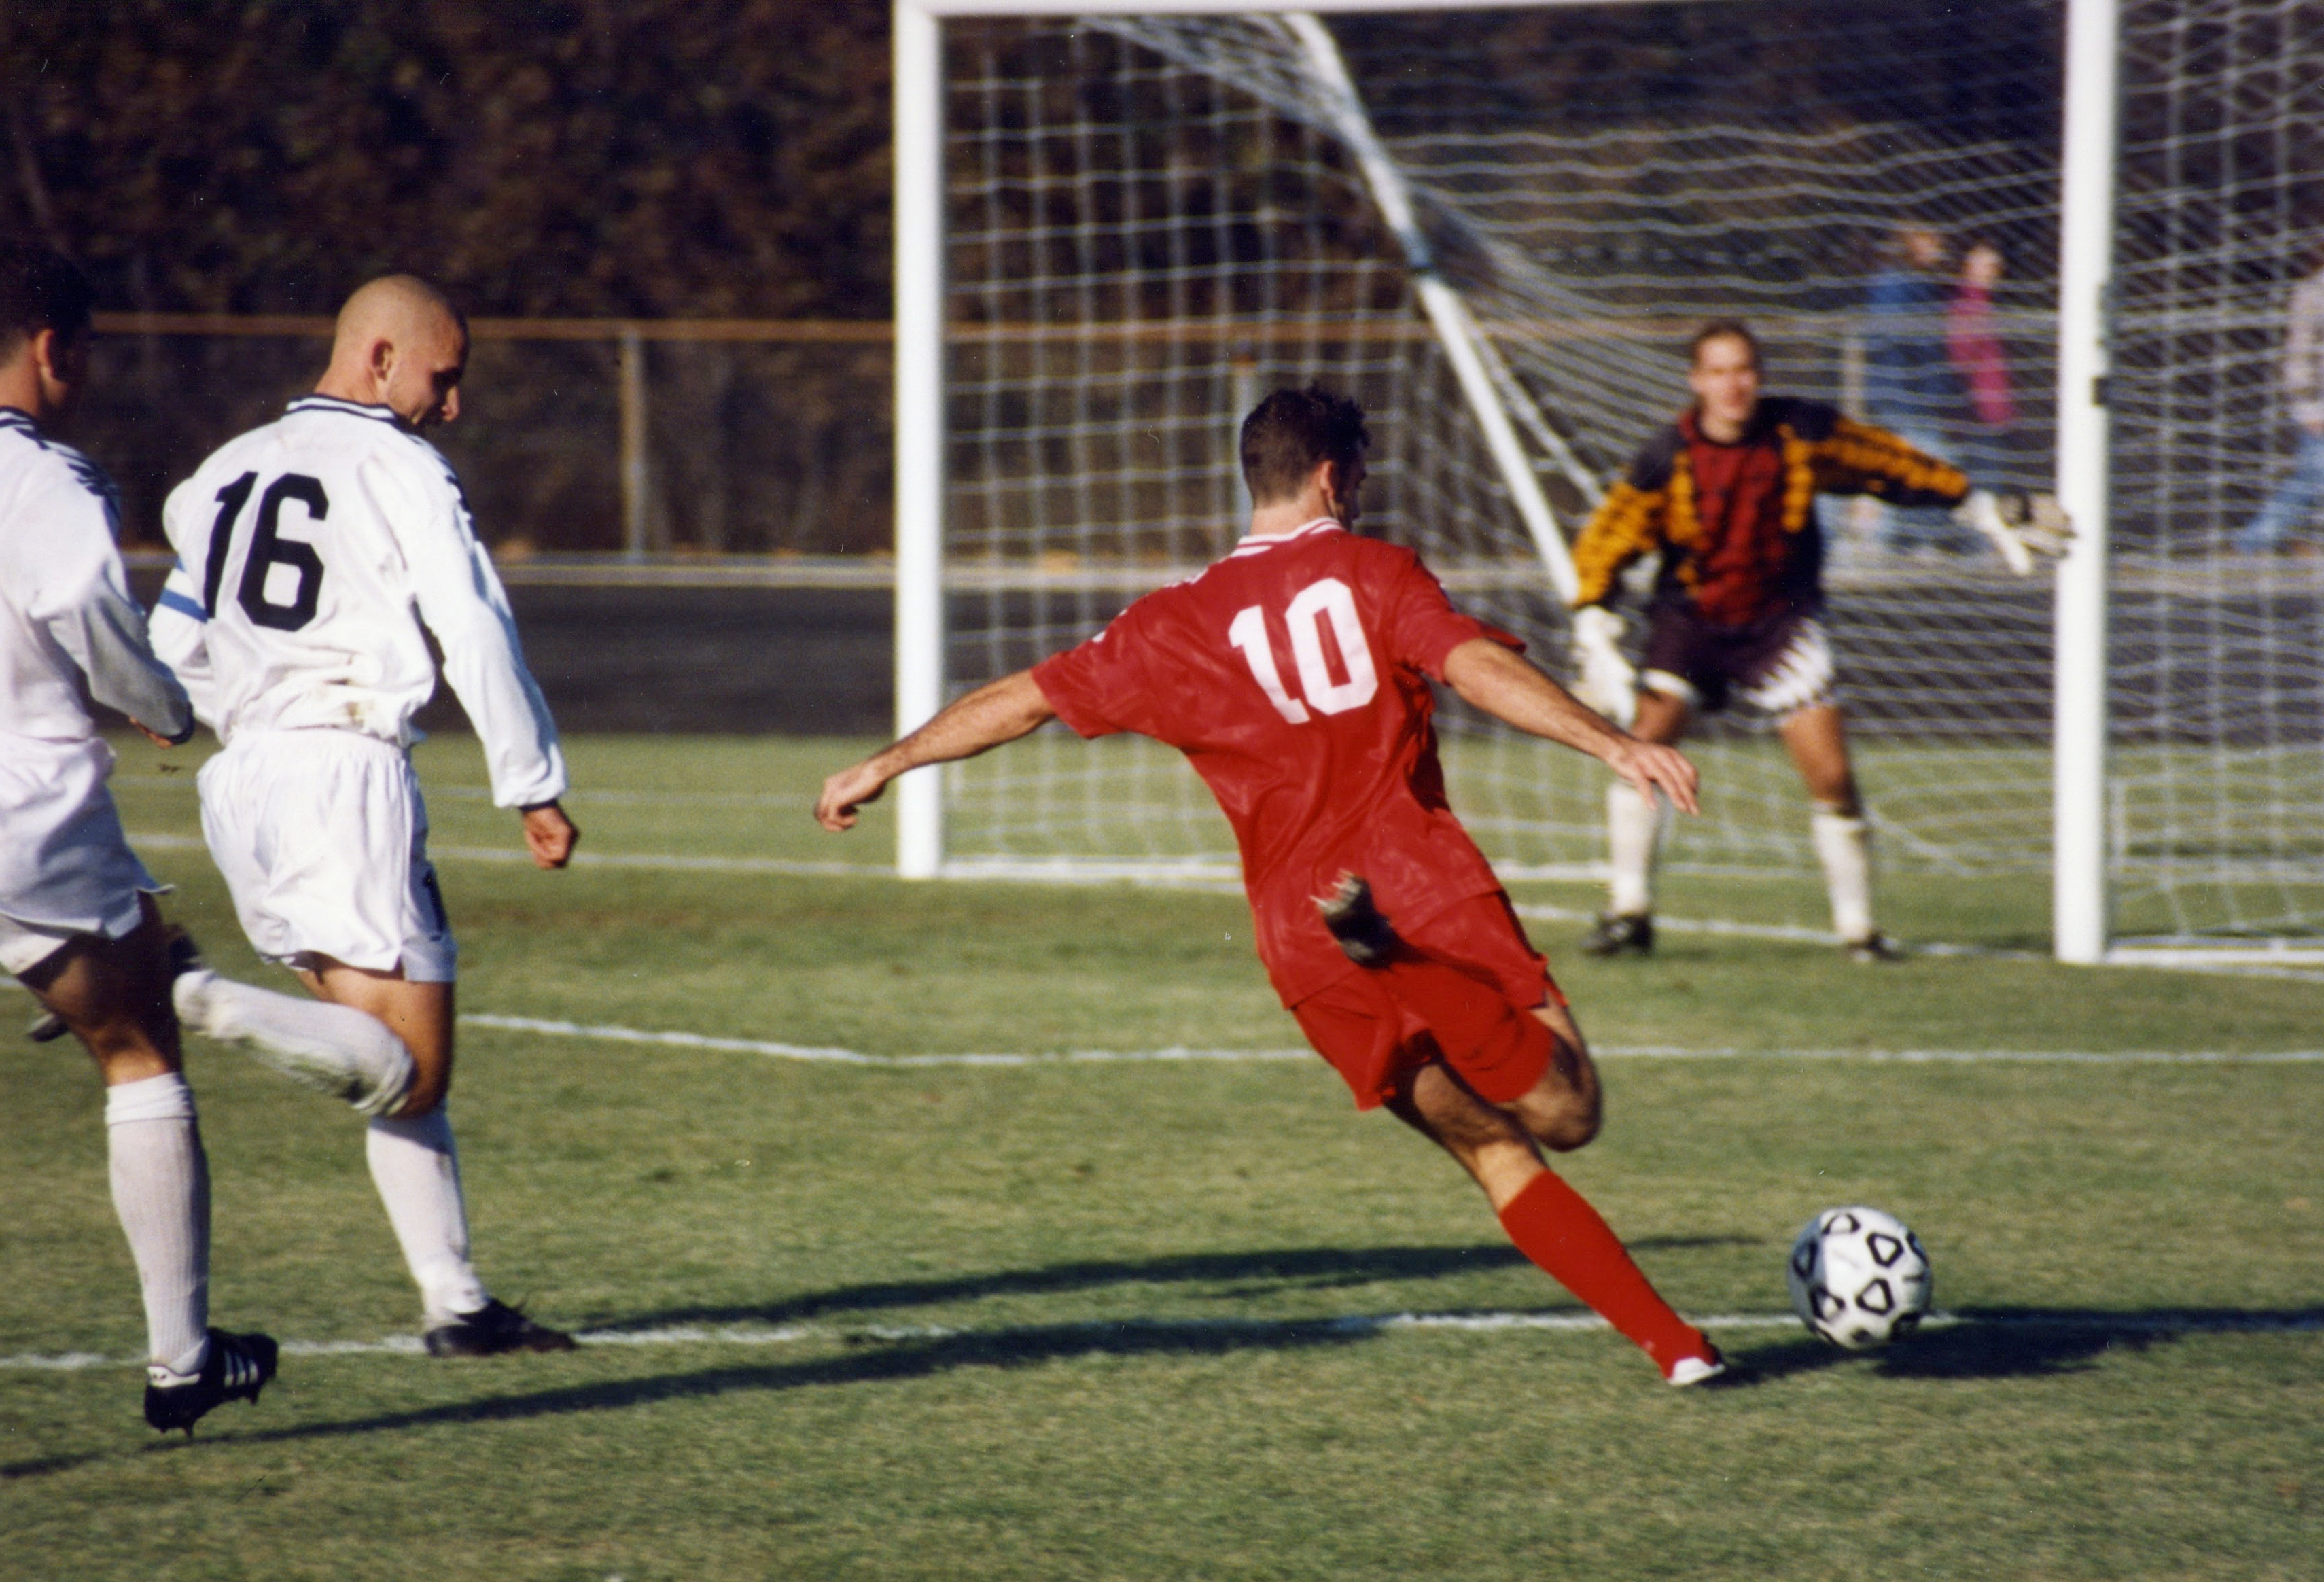 File:Football iu 1996.jpg